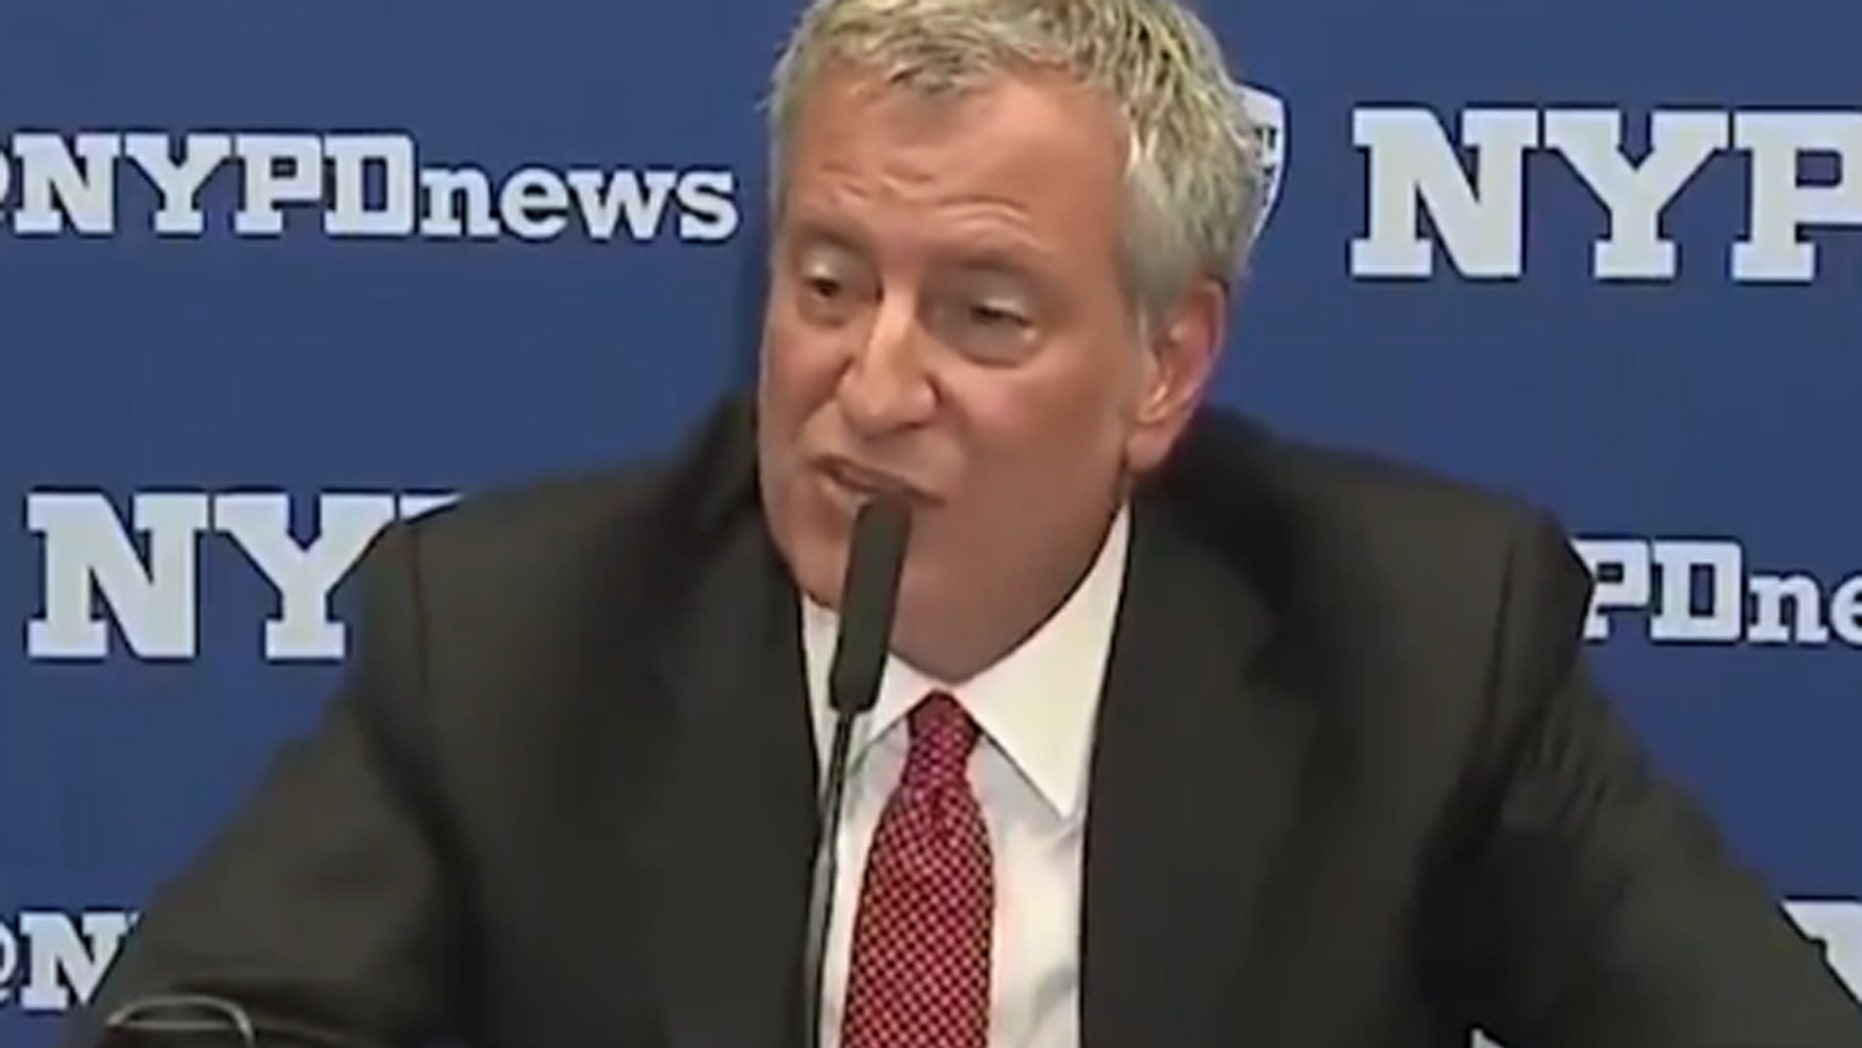 Aug 11: New York's Mayor Bill deBlasio addresses the media.